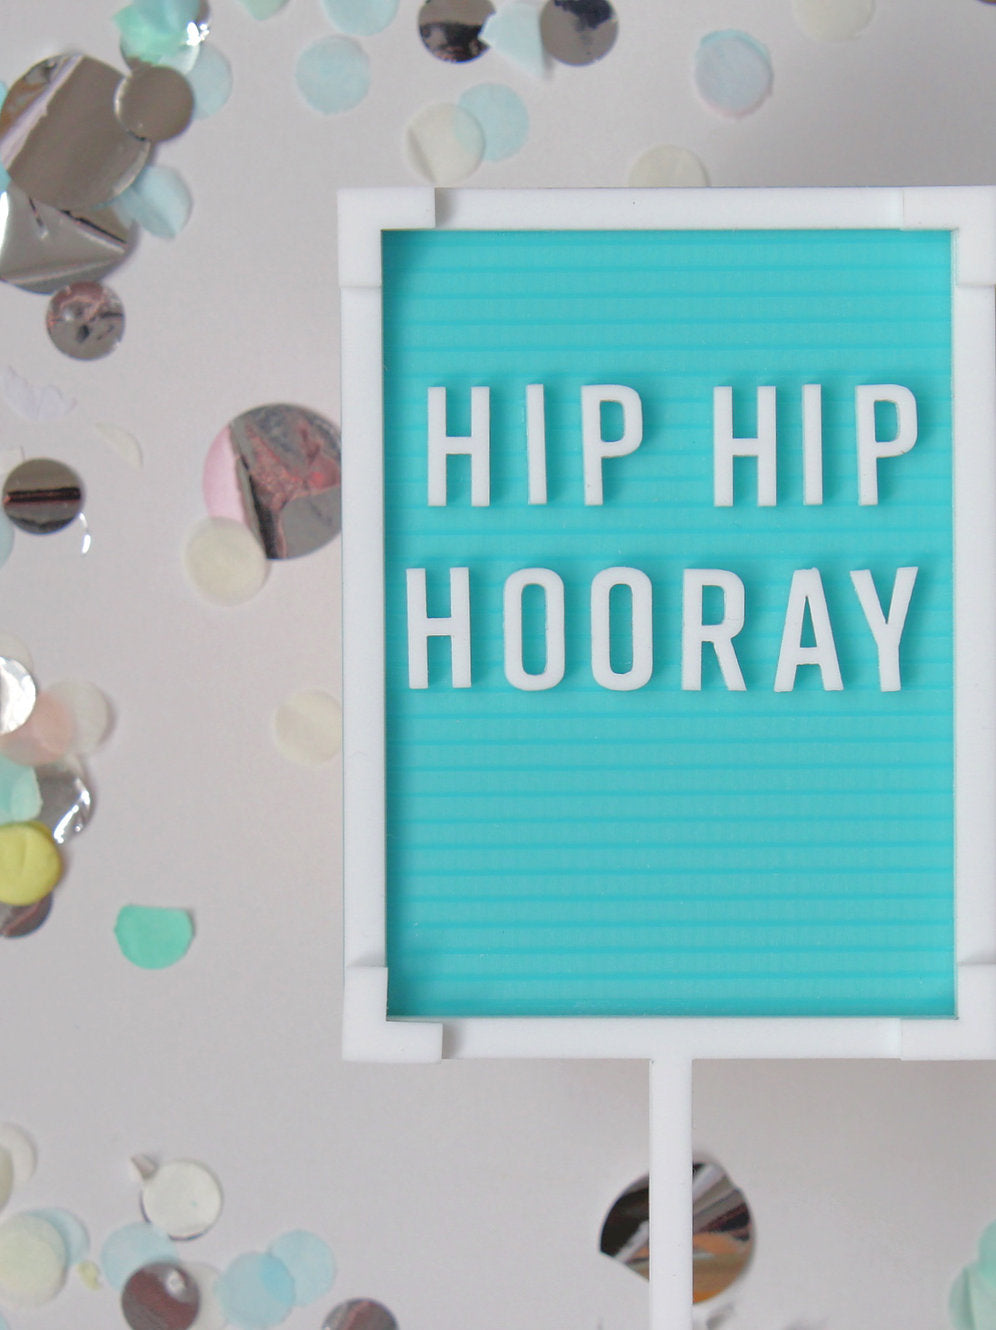 Hip Hip Hooray Letter Board Cake Topper - Sweet Layer Cake